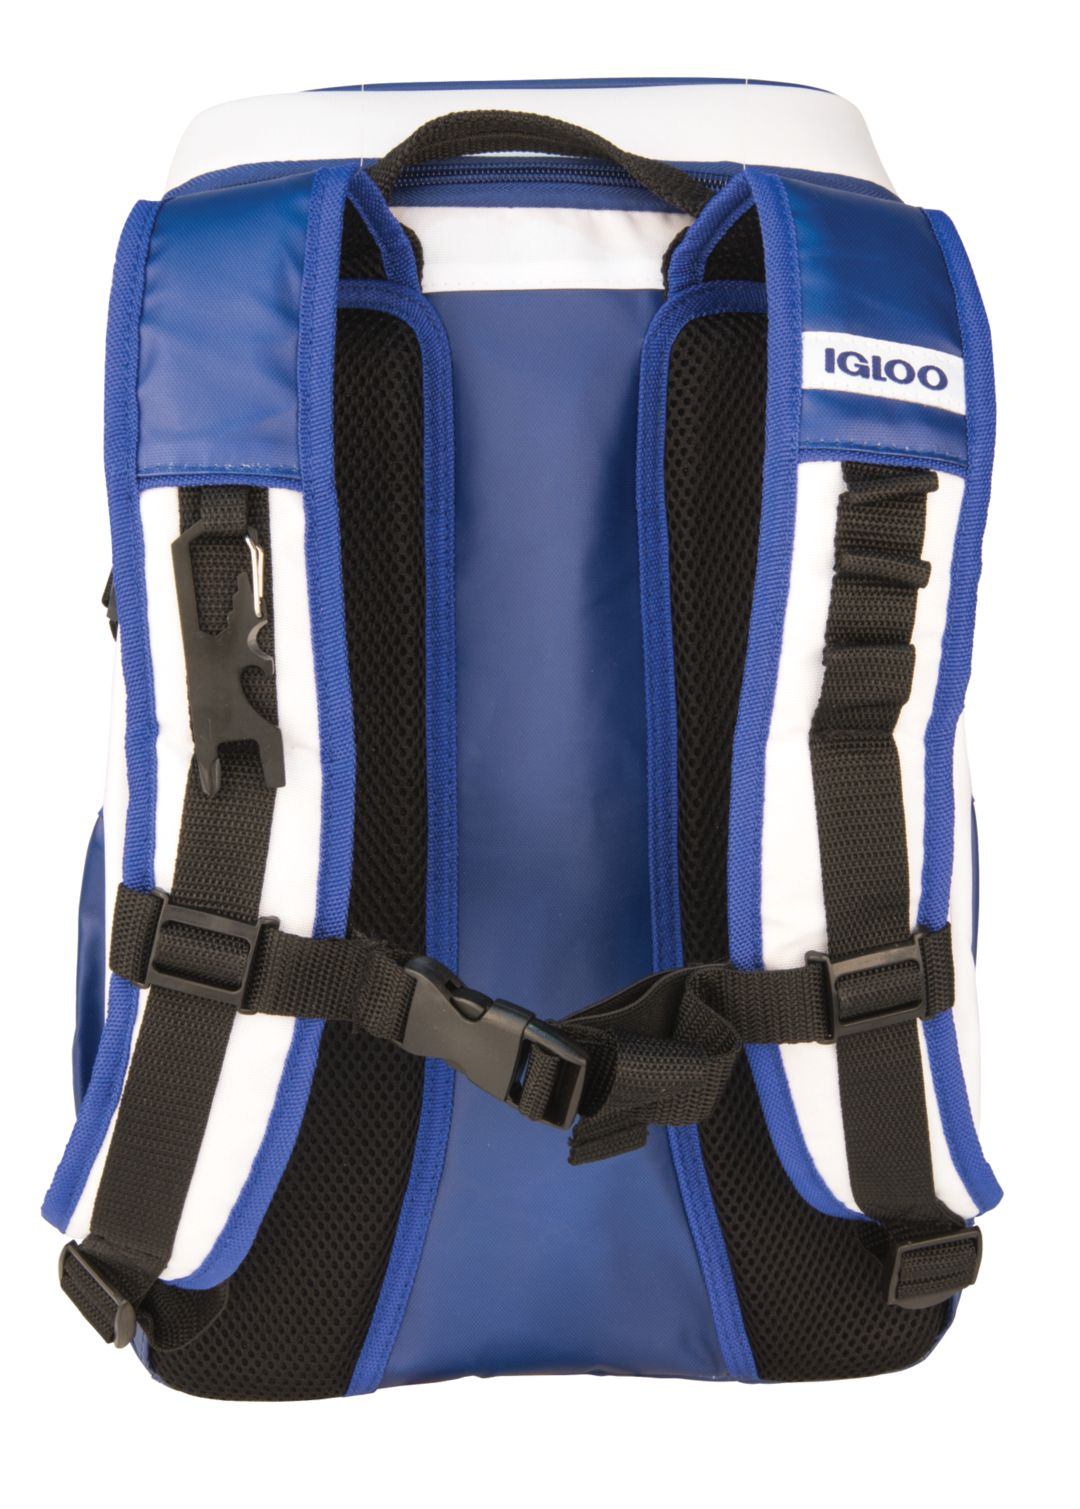 Igloo Backpack Cooler ORIGINAL Camping Food and Beverage MaxCold NEW